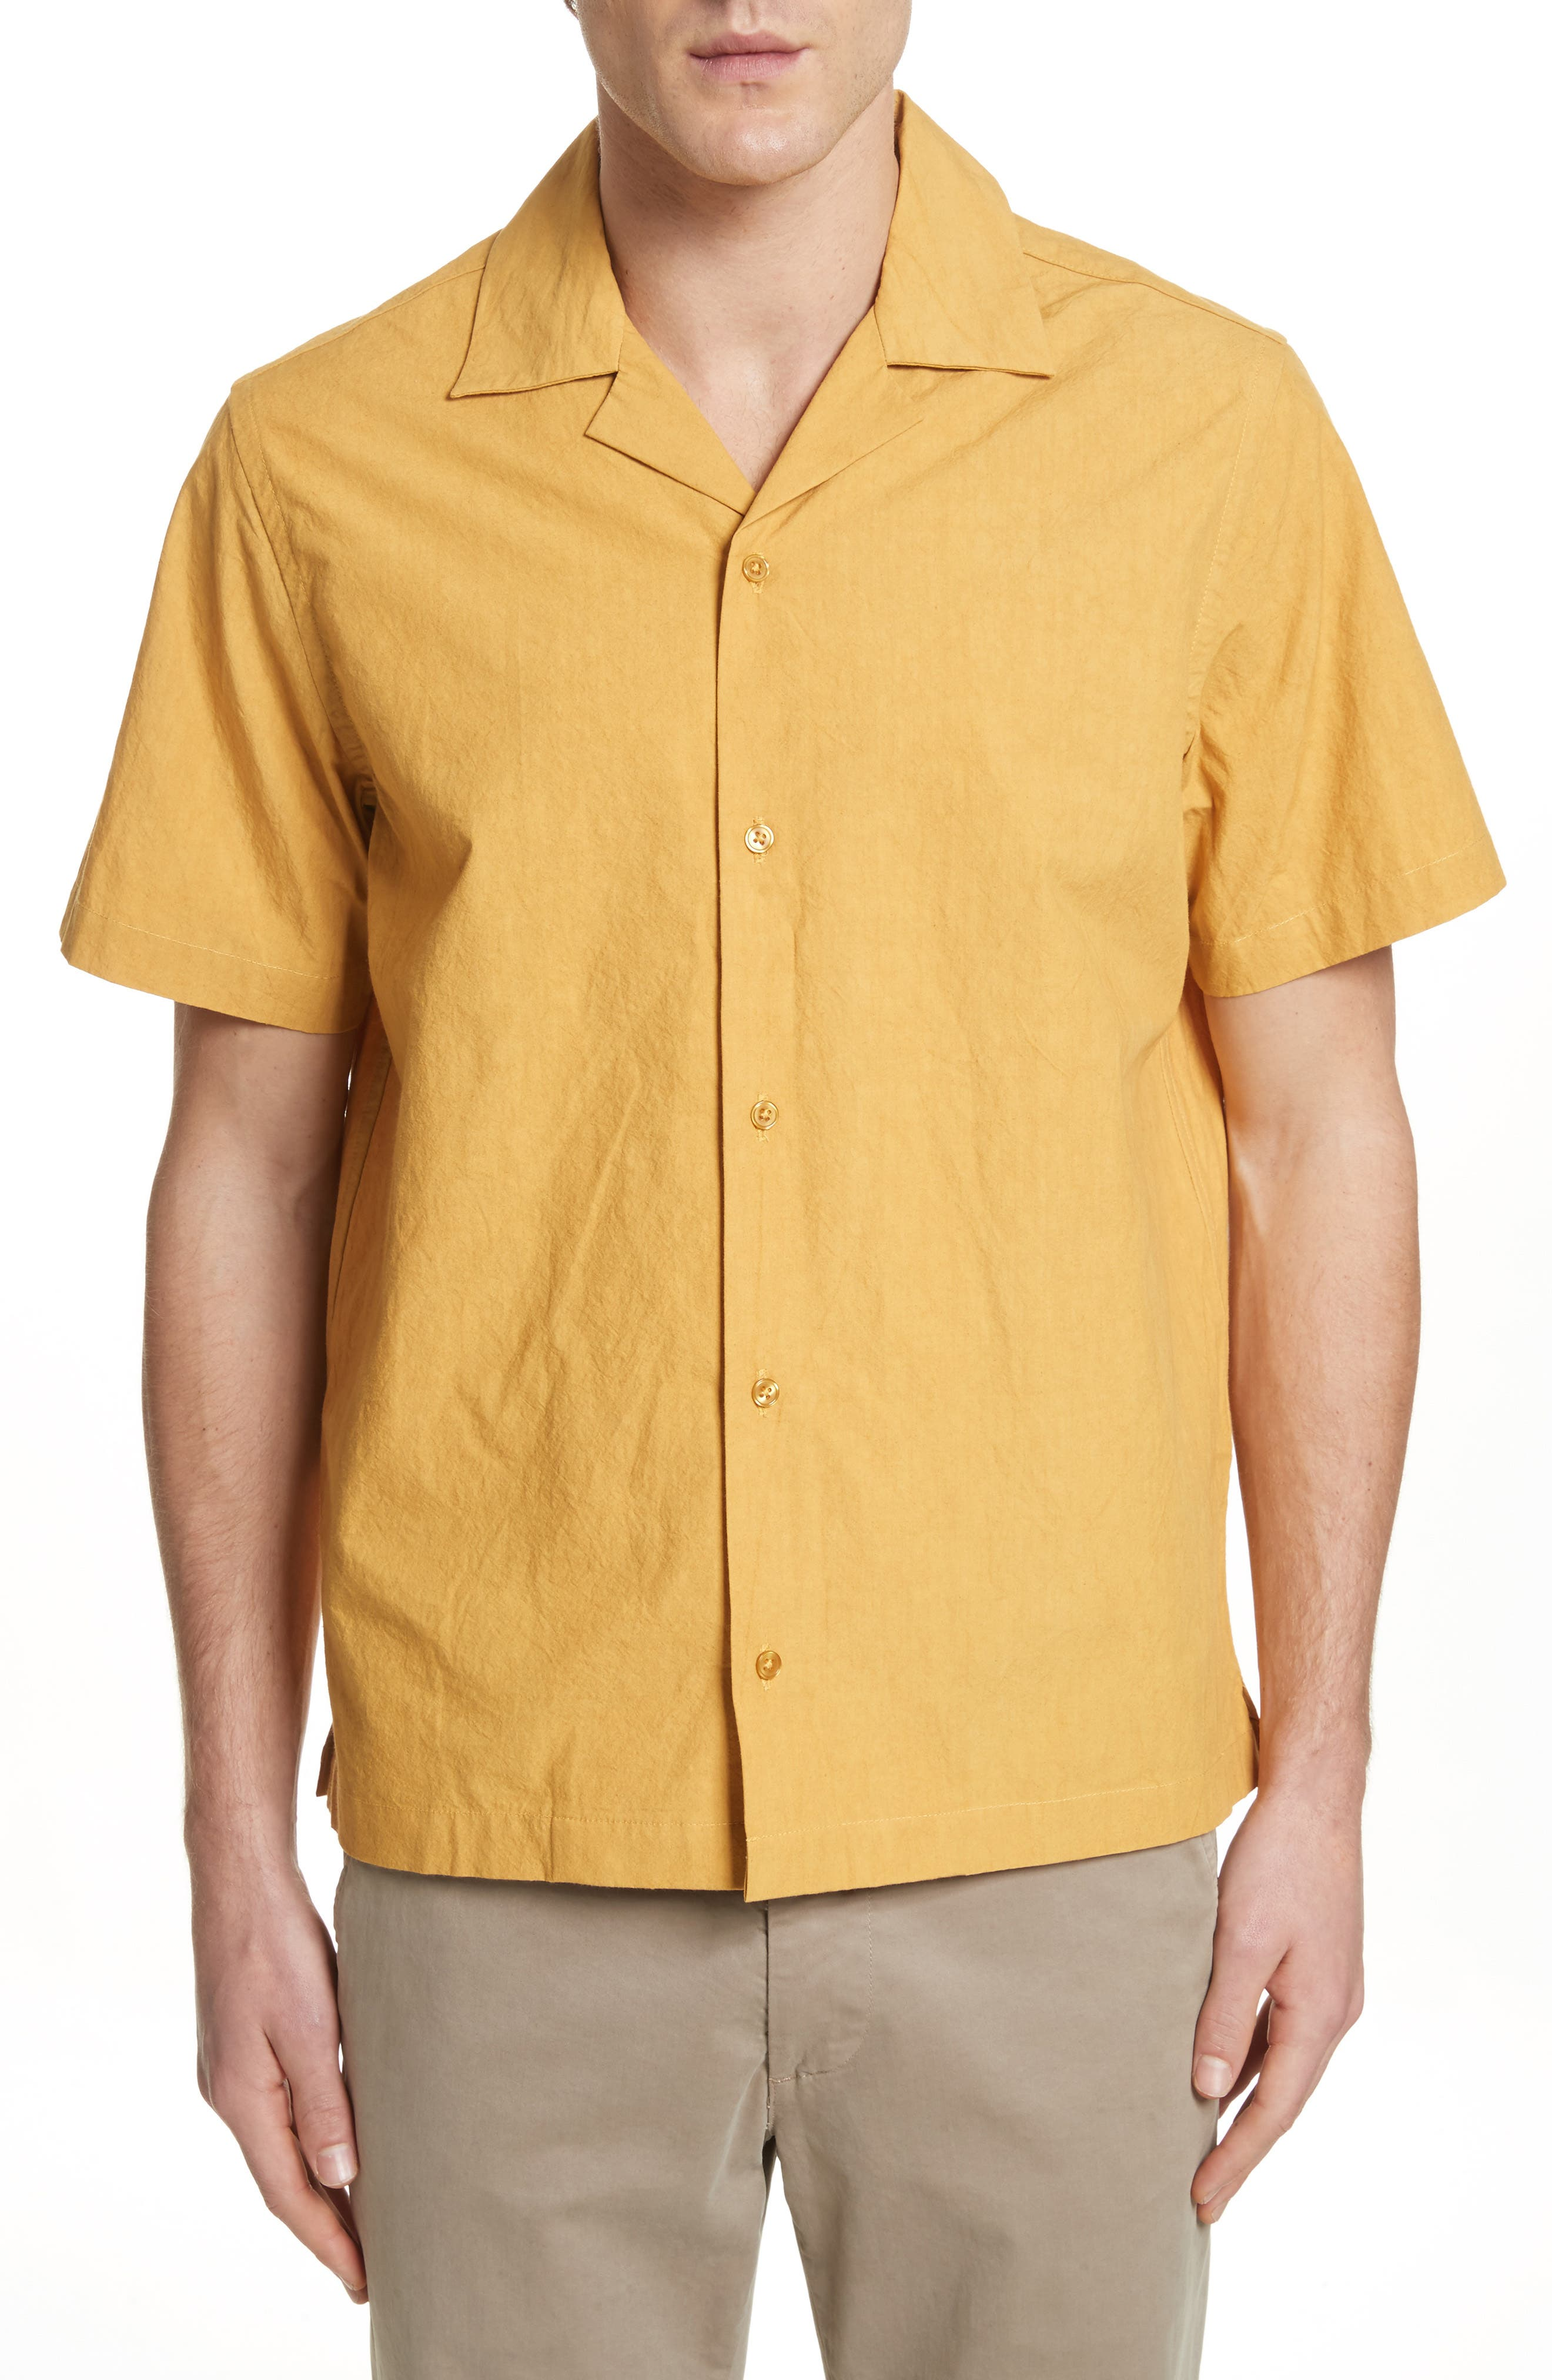 Canty Woven Camp Shirt,                         Main,                         color, Dusty Amber